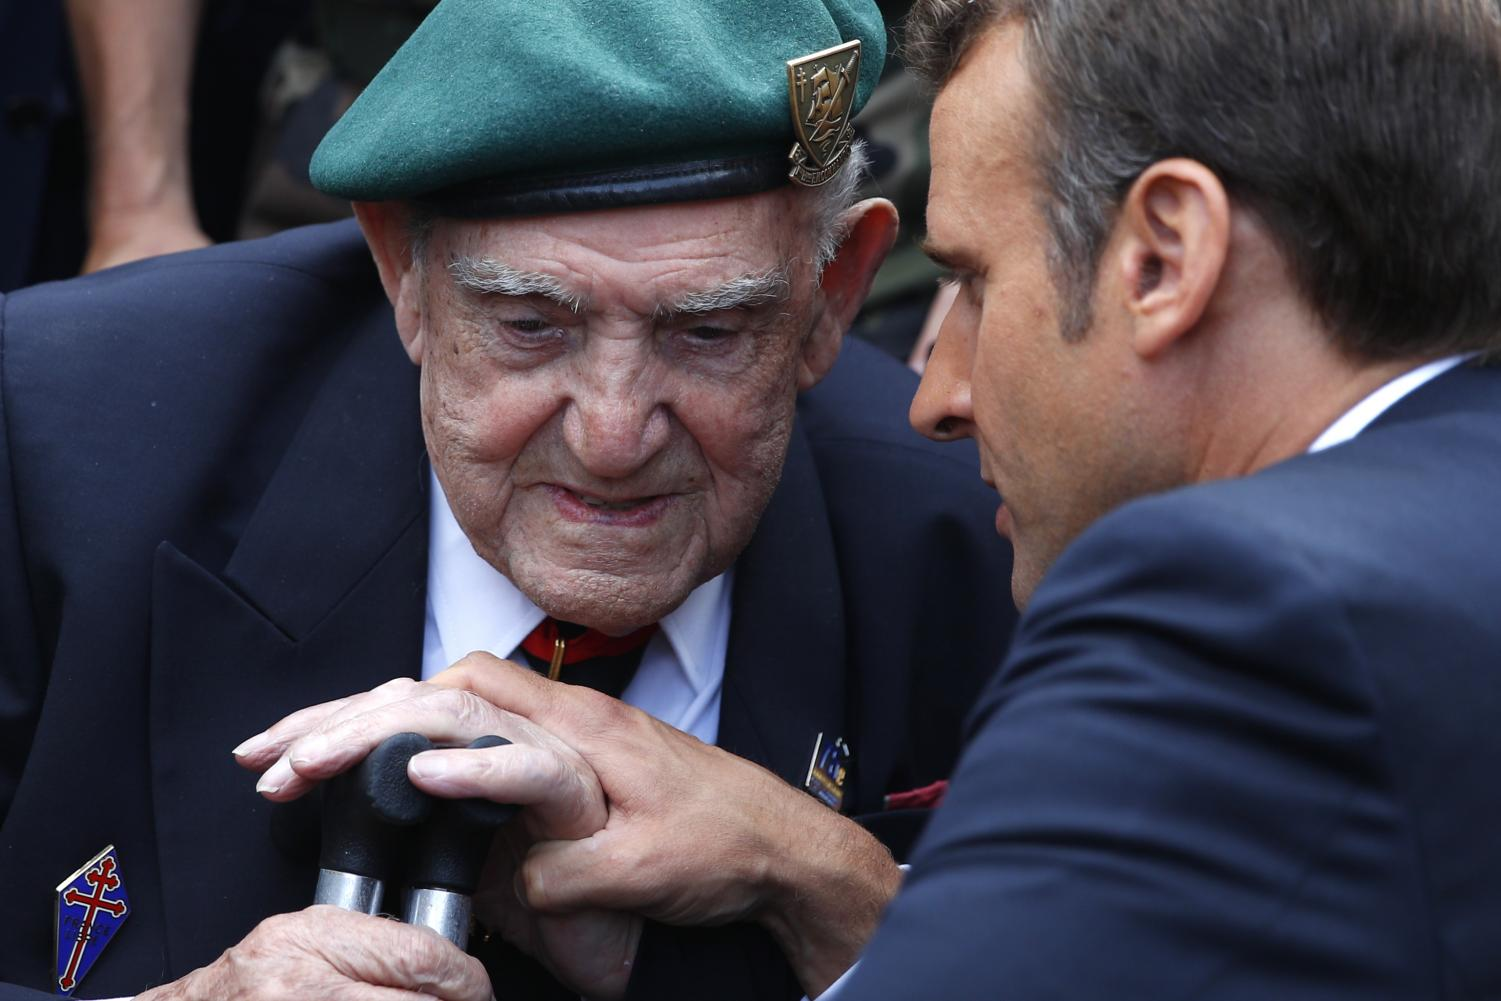 French President Emmanuel Macron, right, talks to French war veteran Leon Gautier, a member of the Kieffer commando, during a ceremony to pay homage to the Kieffer commando, Thursday, June 6, 2019 in Colleville-Montgomery, Normandy. The Kieffer commando, an elite French unit, was among the first waves of Allied troops to storm the heavily defended beaches of Nazi-occupied northern France, beginning the liberation of western Europe.